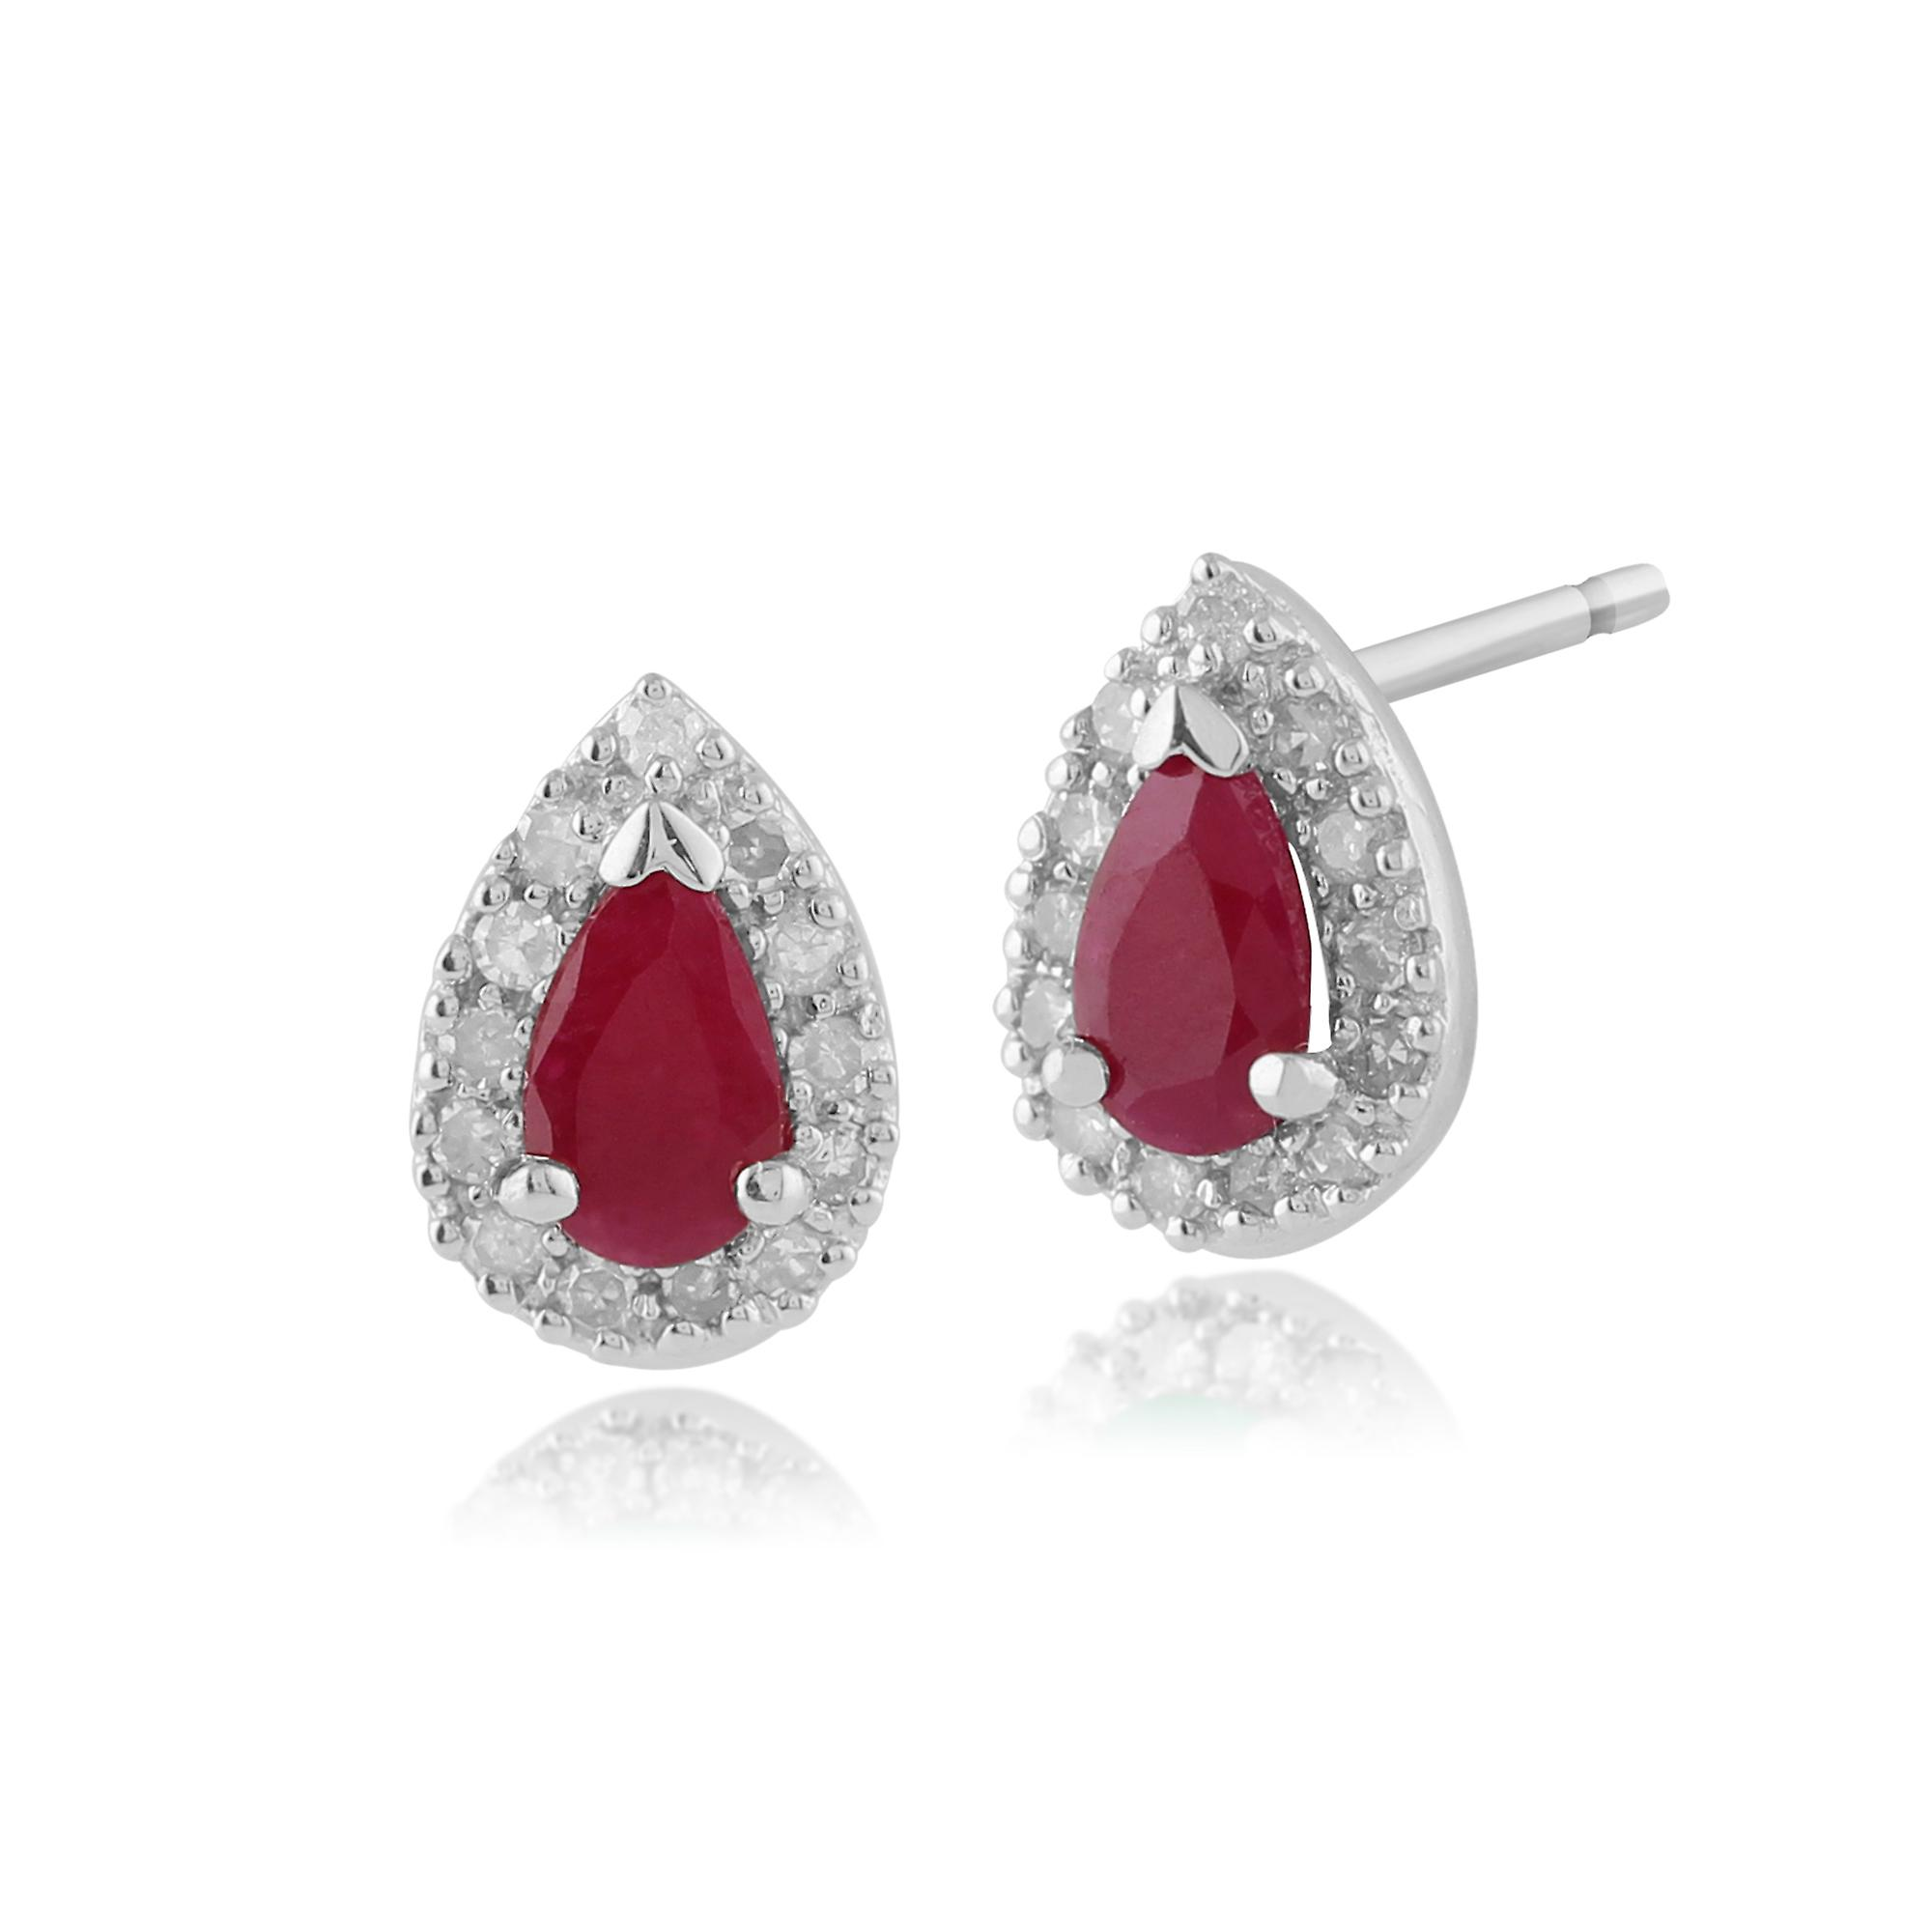 9ct White Gold 0.45ct Ruby & Diamond Cluster Stud Earrings